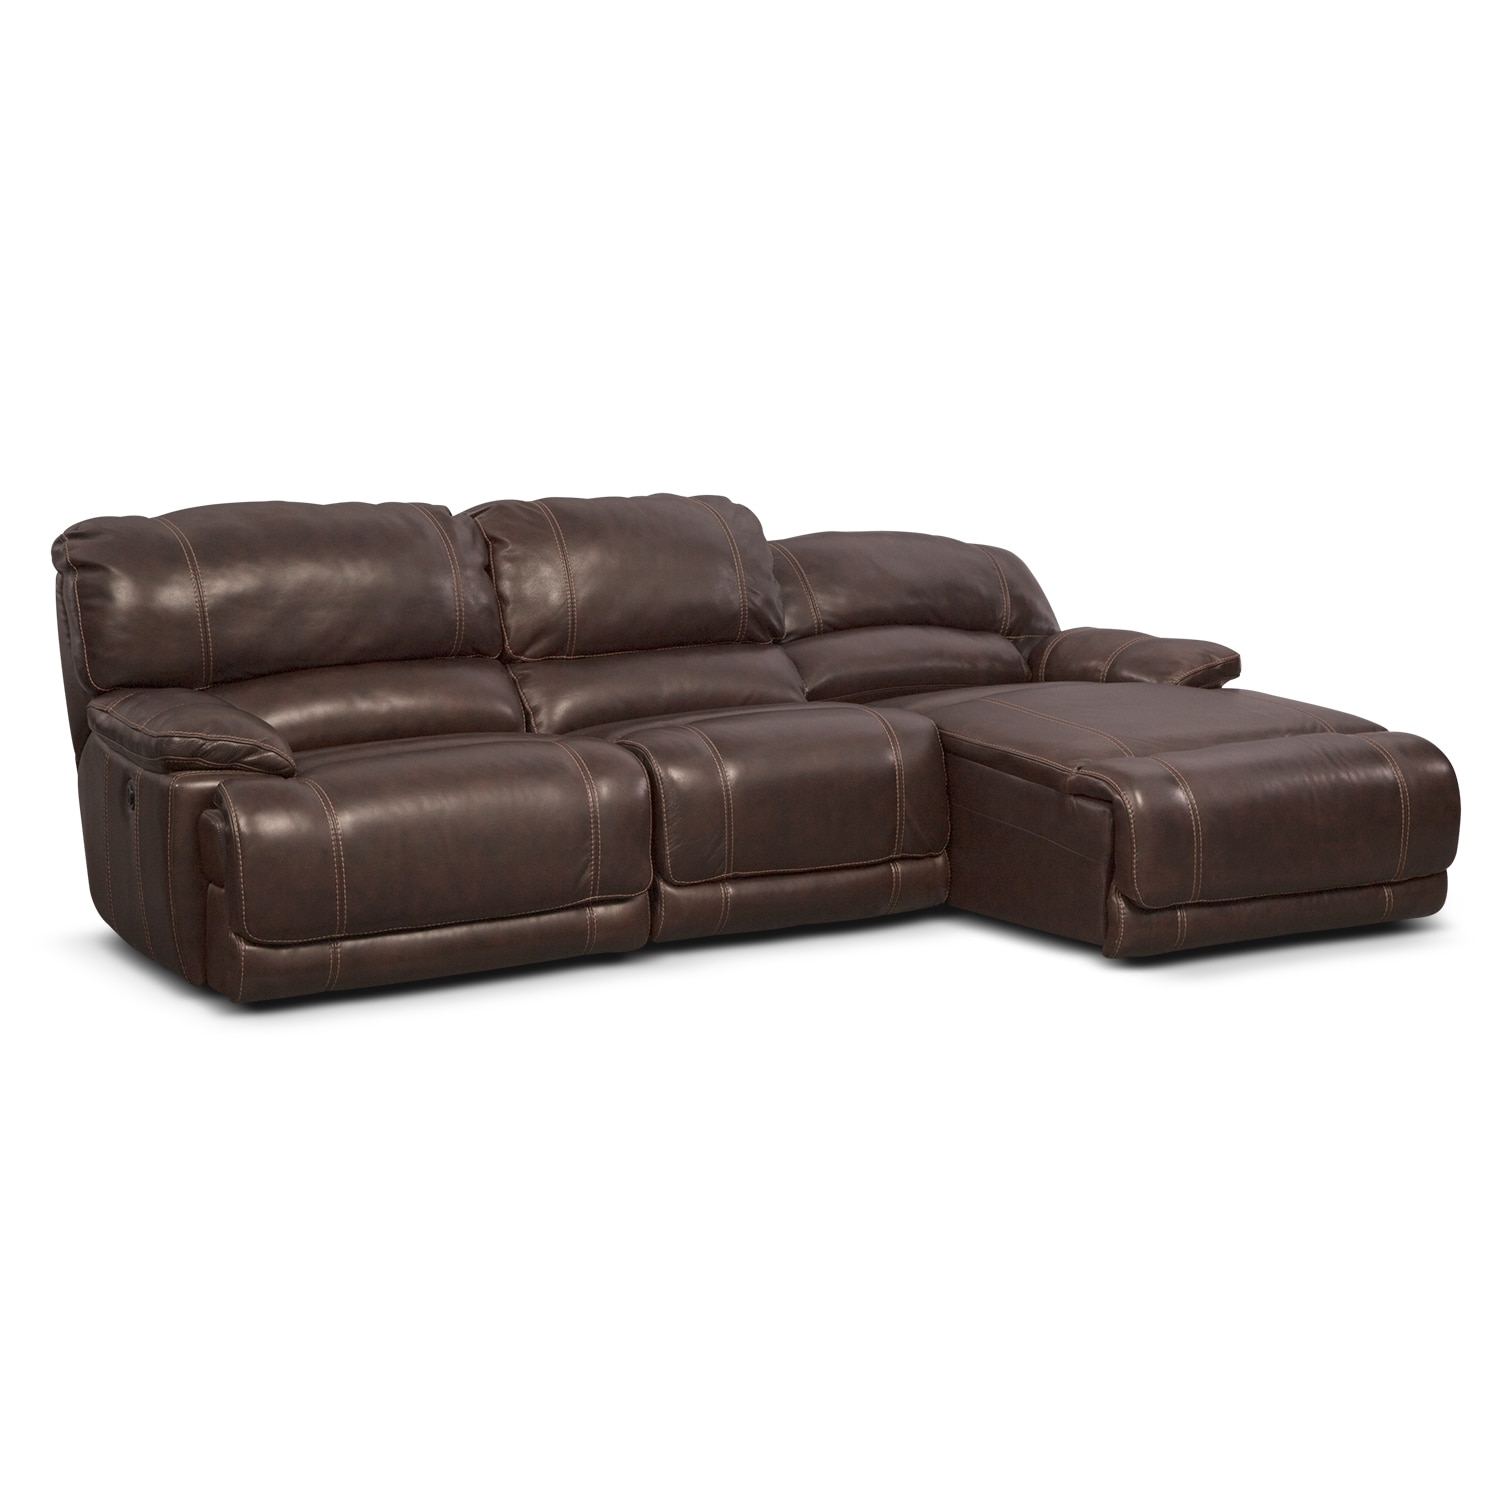 St malo 3 piece power reclining sectional with right for Brown sectionals with chaise